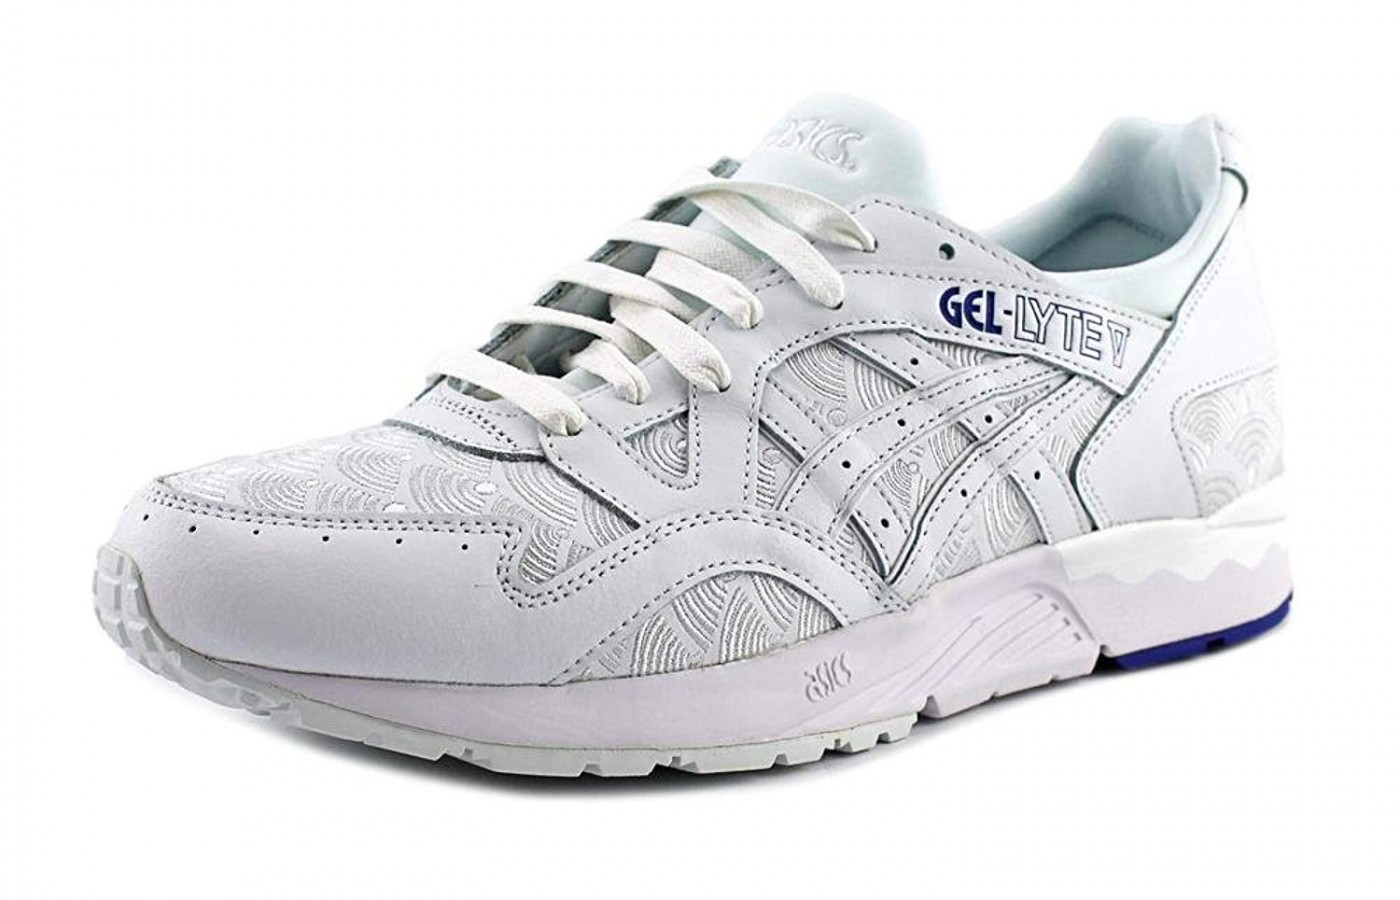 16fc9624a577 Asics Gel-Lyte V Reviewed for Performance in 2019